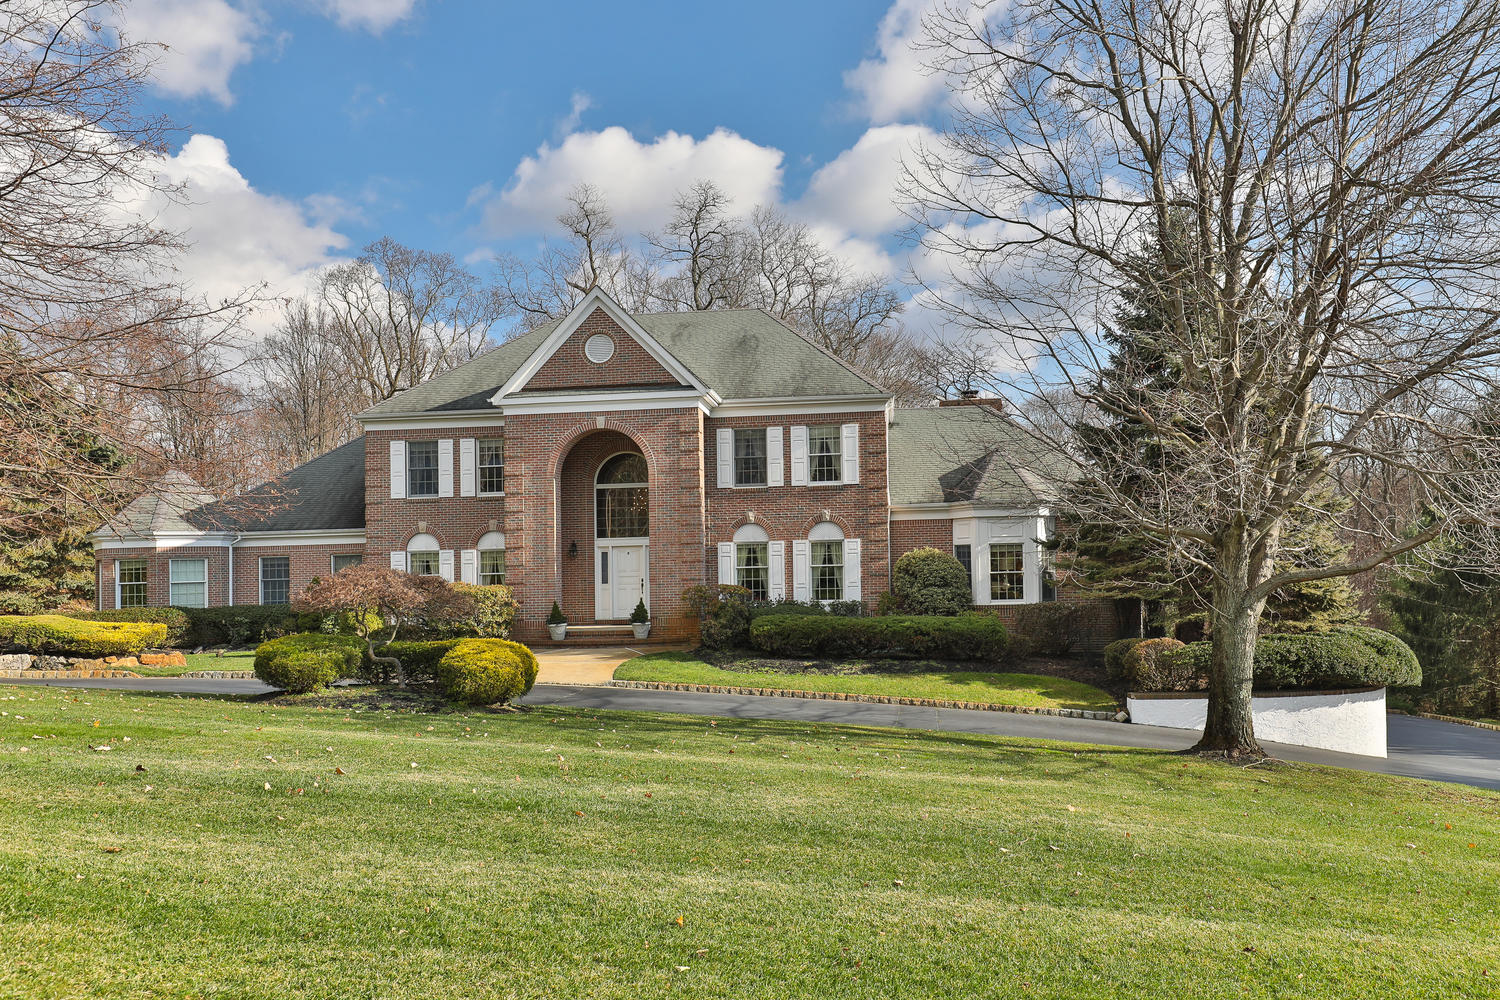 Single Family Home for Sale at Elegant Custom Colonial 3 Concord Court Colts Neck, New Jersey, 07722 United States